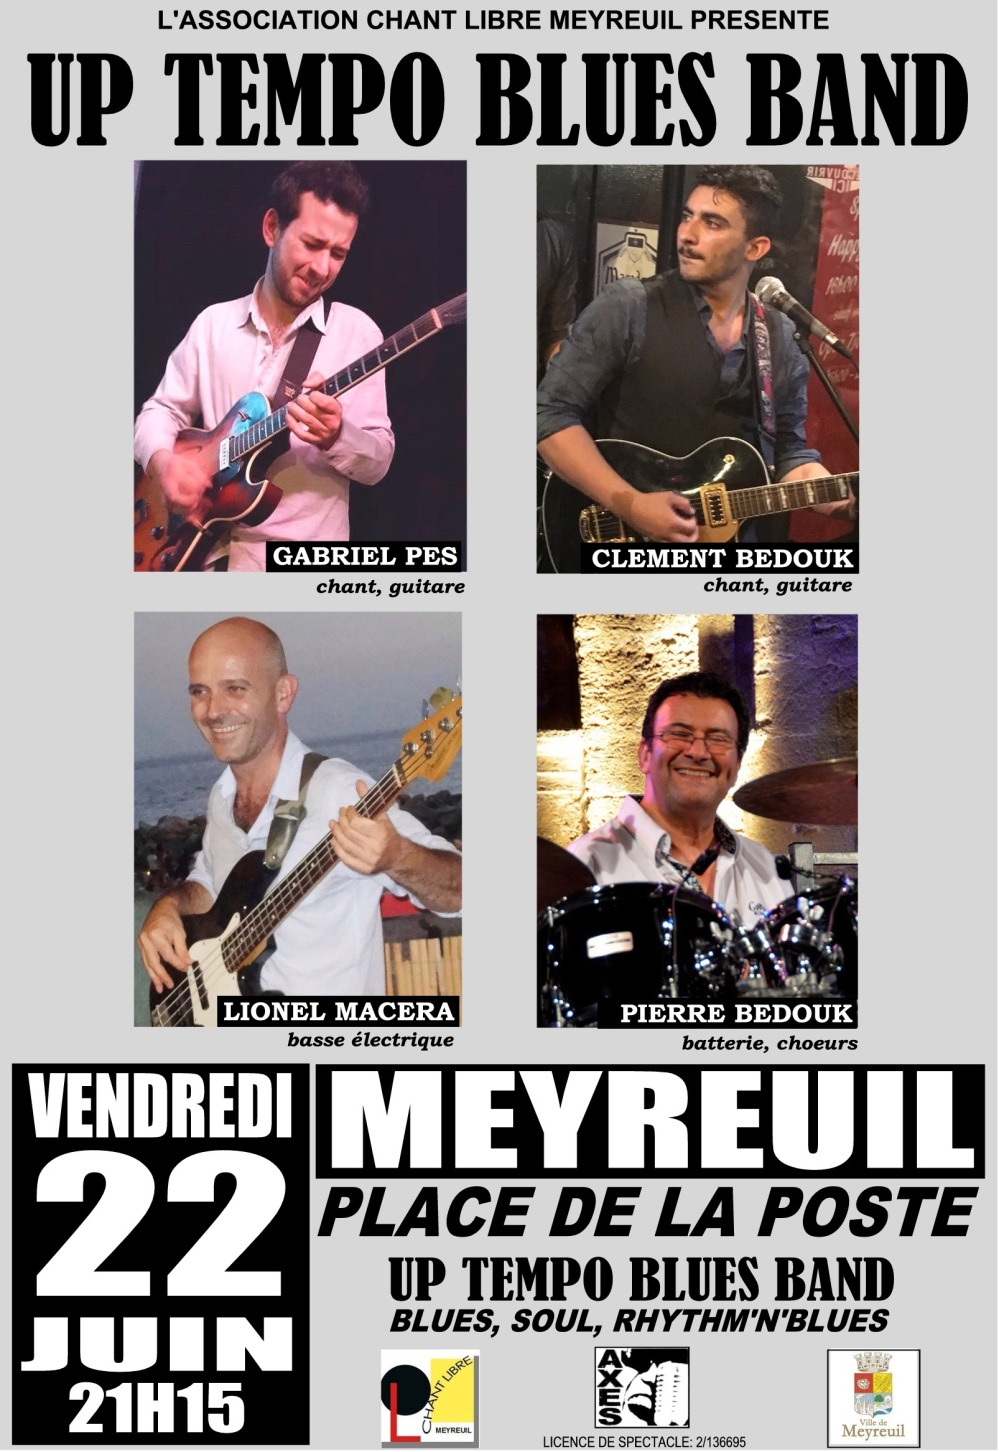 AFFICHE UP TEMPO BLUES BAND 22 JUIN 2018